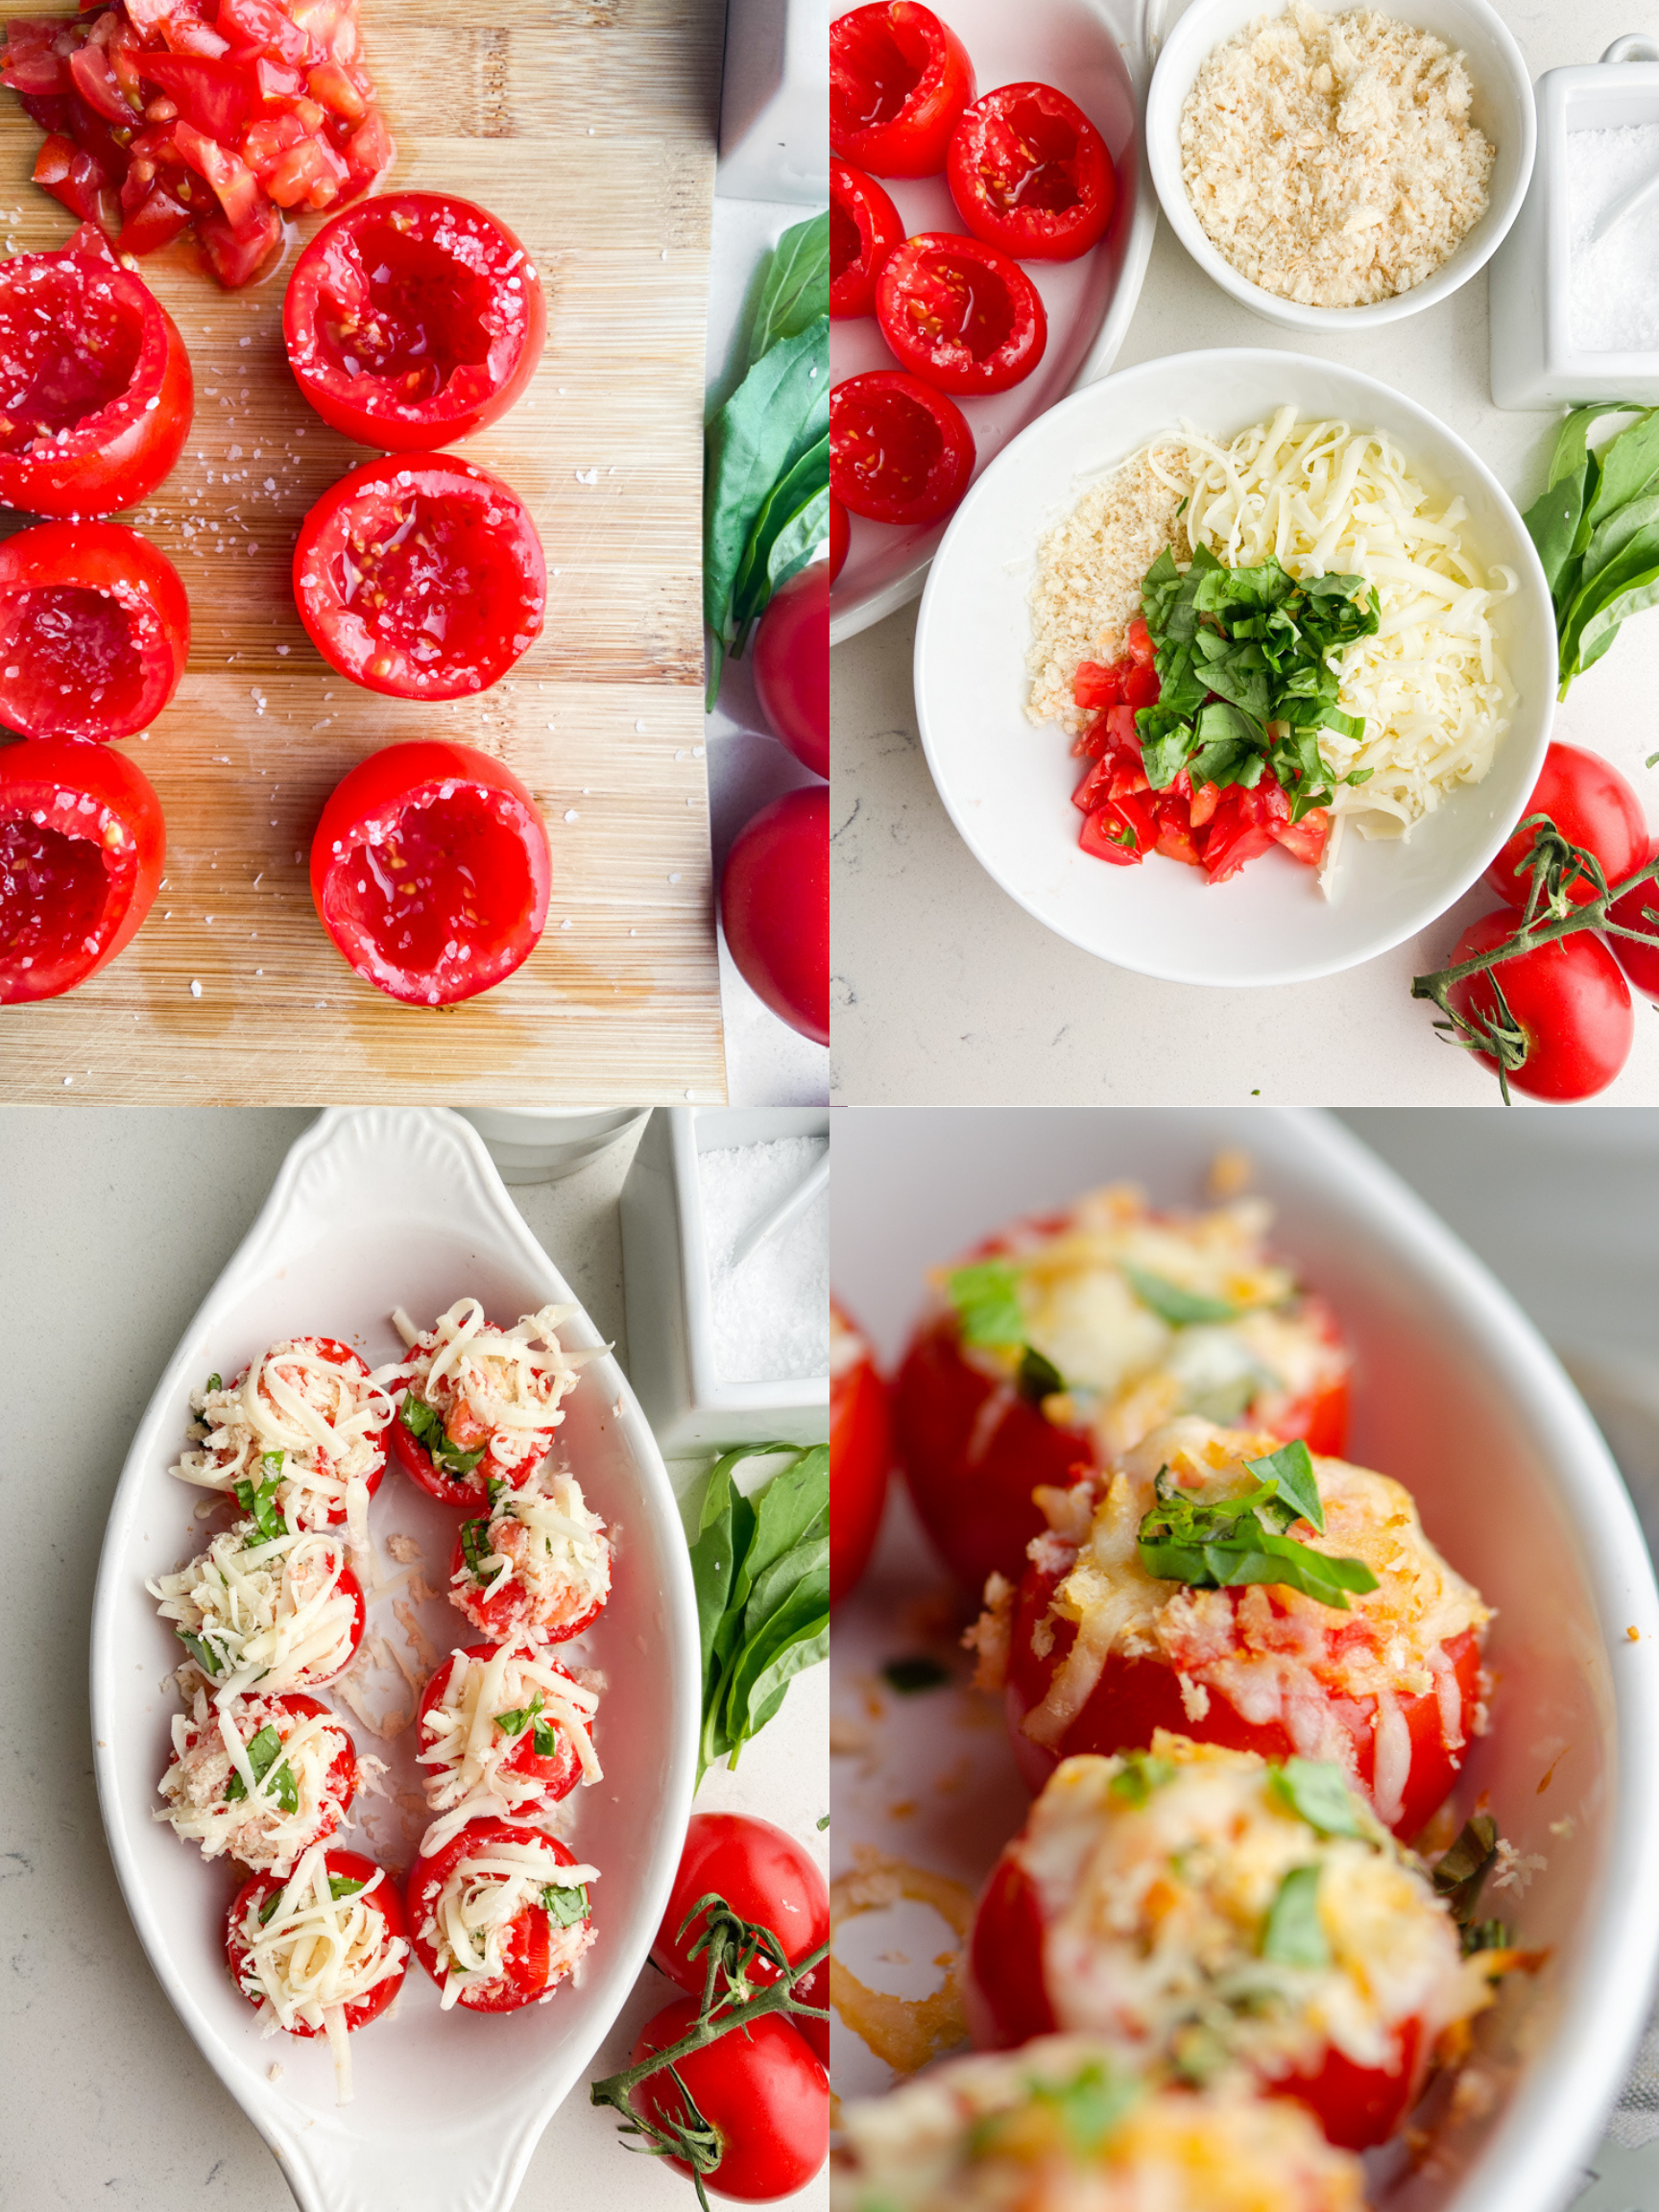 Step by step photos showing how to make stuffed tomatoes.